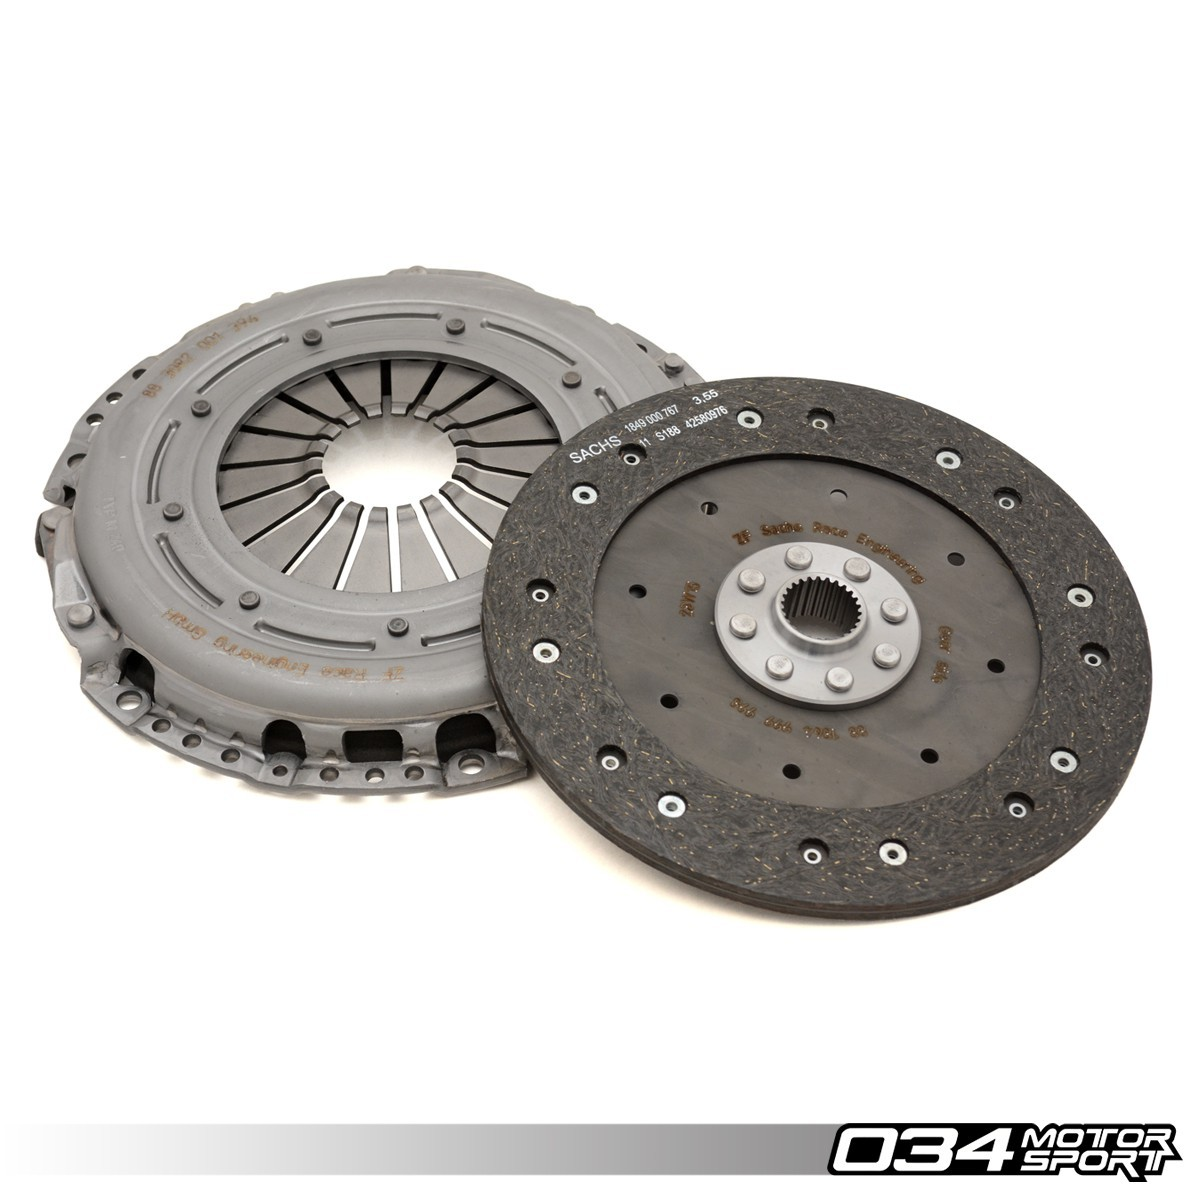 Sachs Performance Clutch Kit for MkVI Volkswagen Golf R | SPC-001394.999502